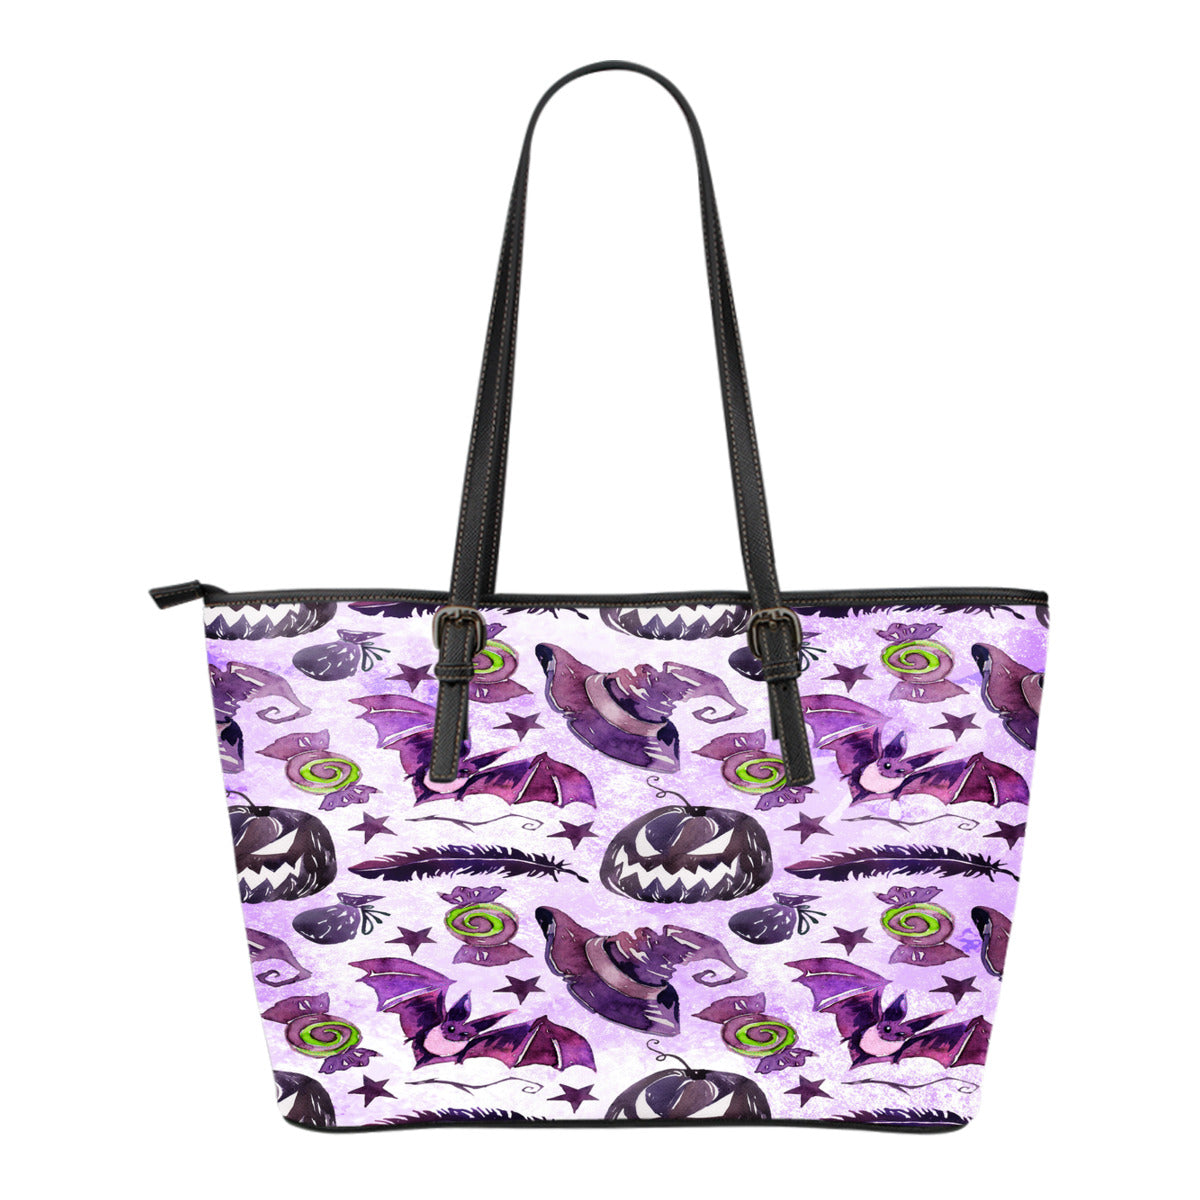 Witch Themed Design C7 Women Small Leather Tote Bag